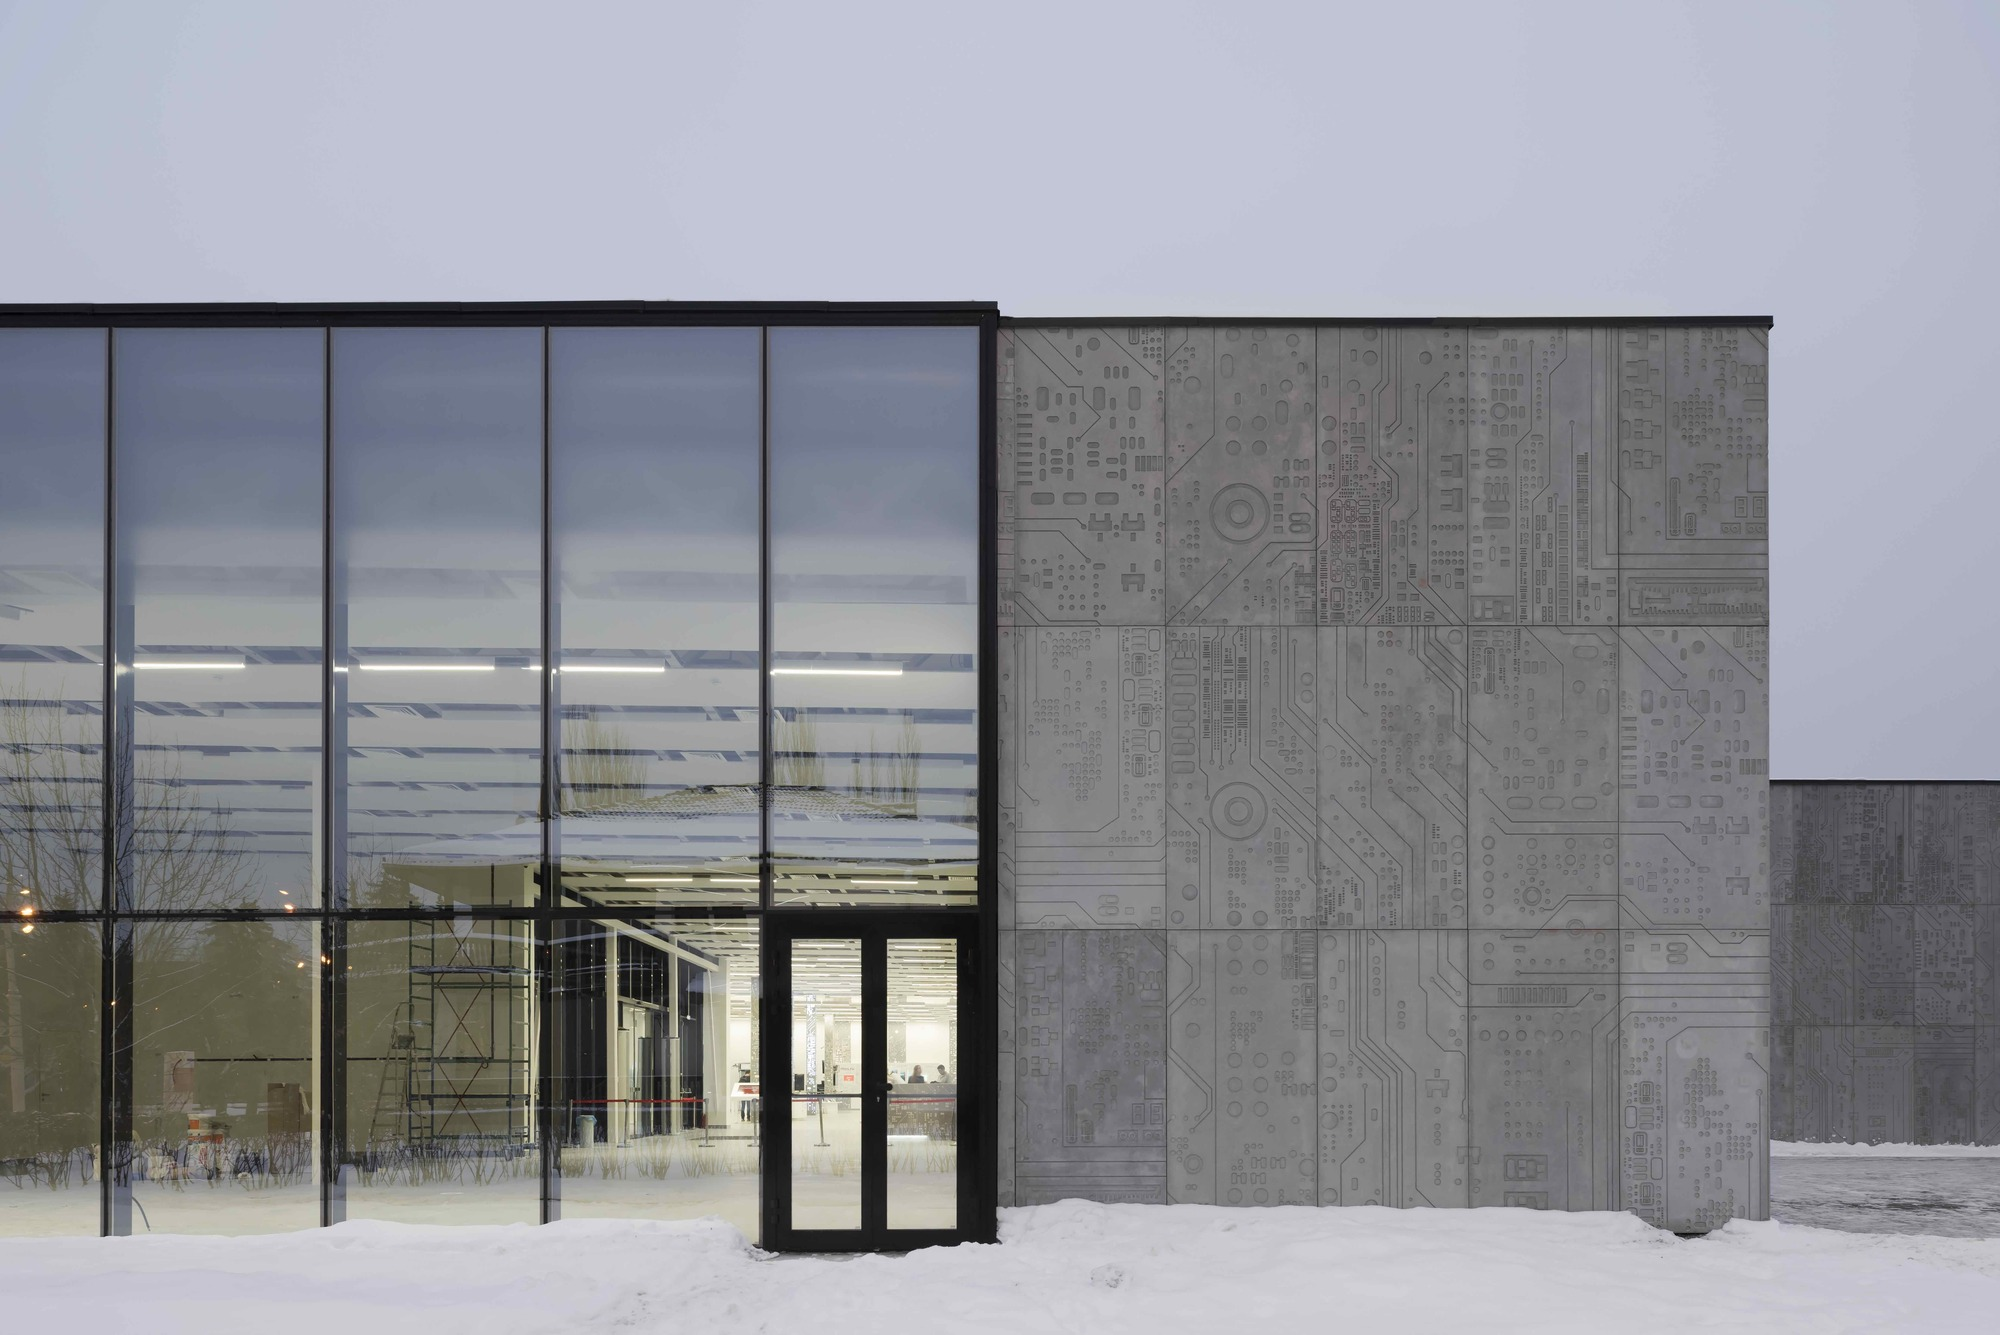 Best Image Pavilion DIT [Department of Information Technology] / Architecture bureau WALL